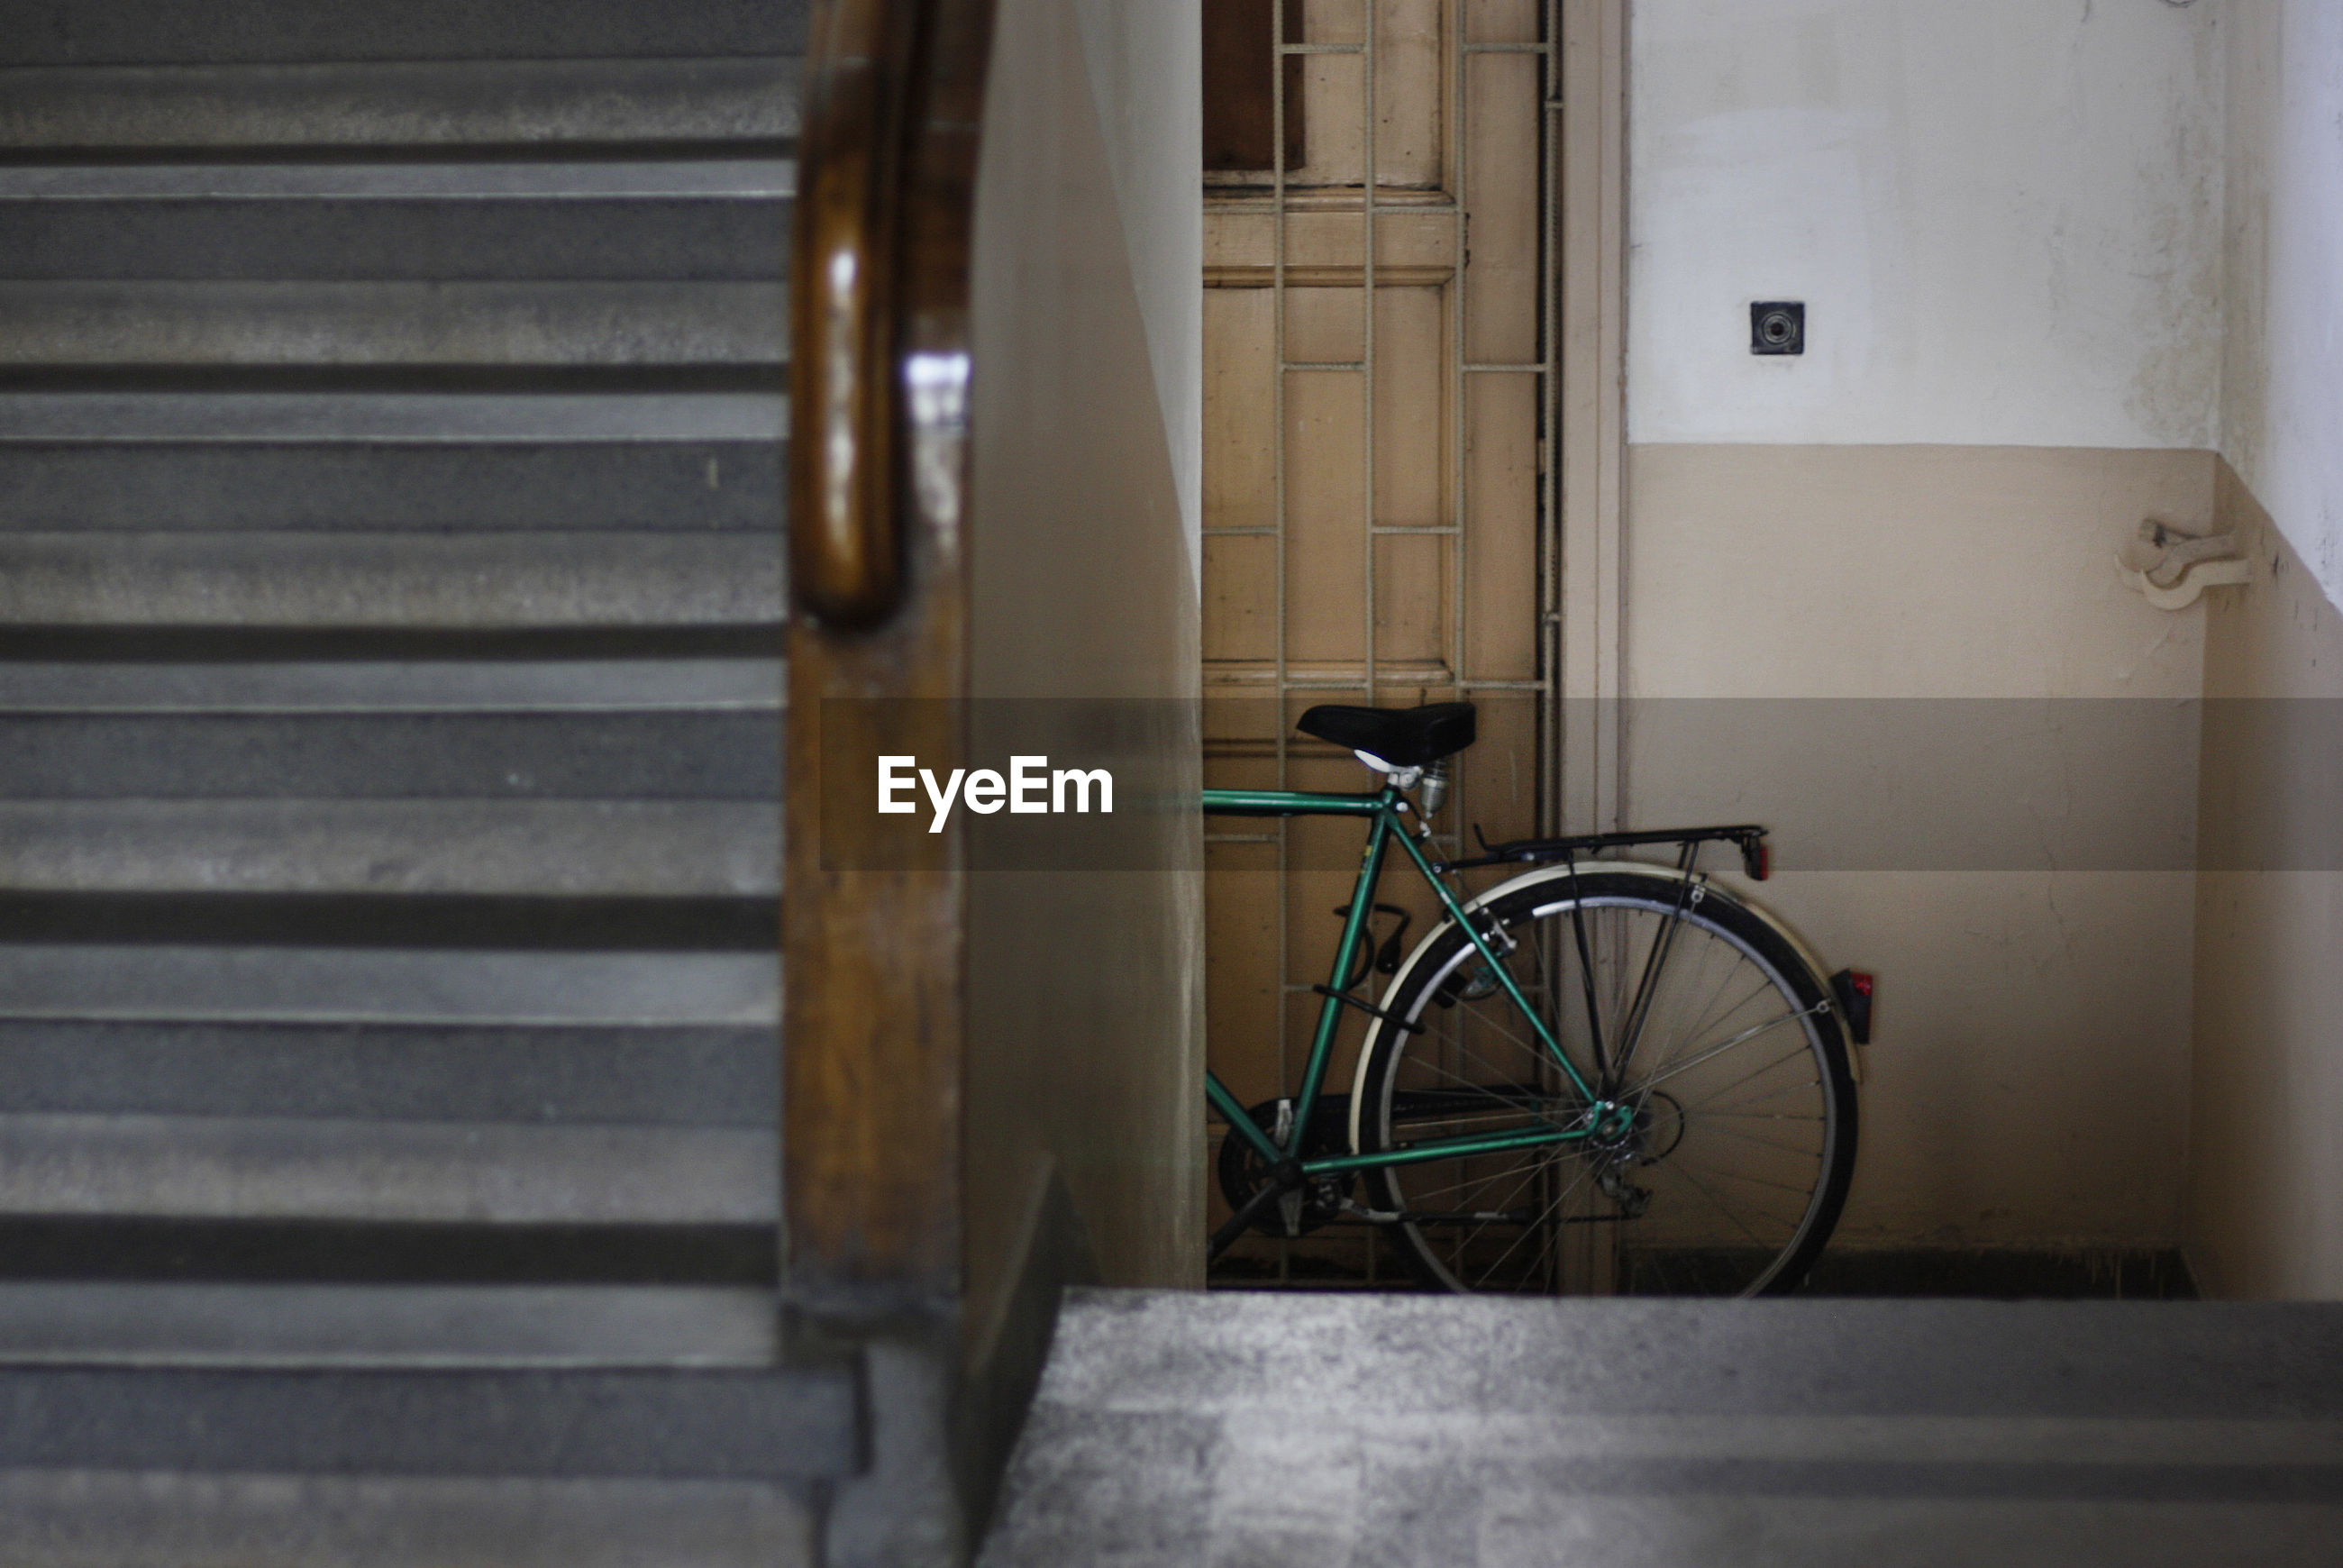 Close-up of steps against bicycle parked by door